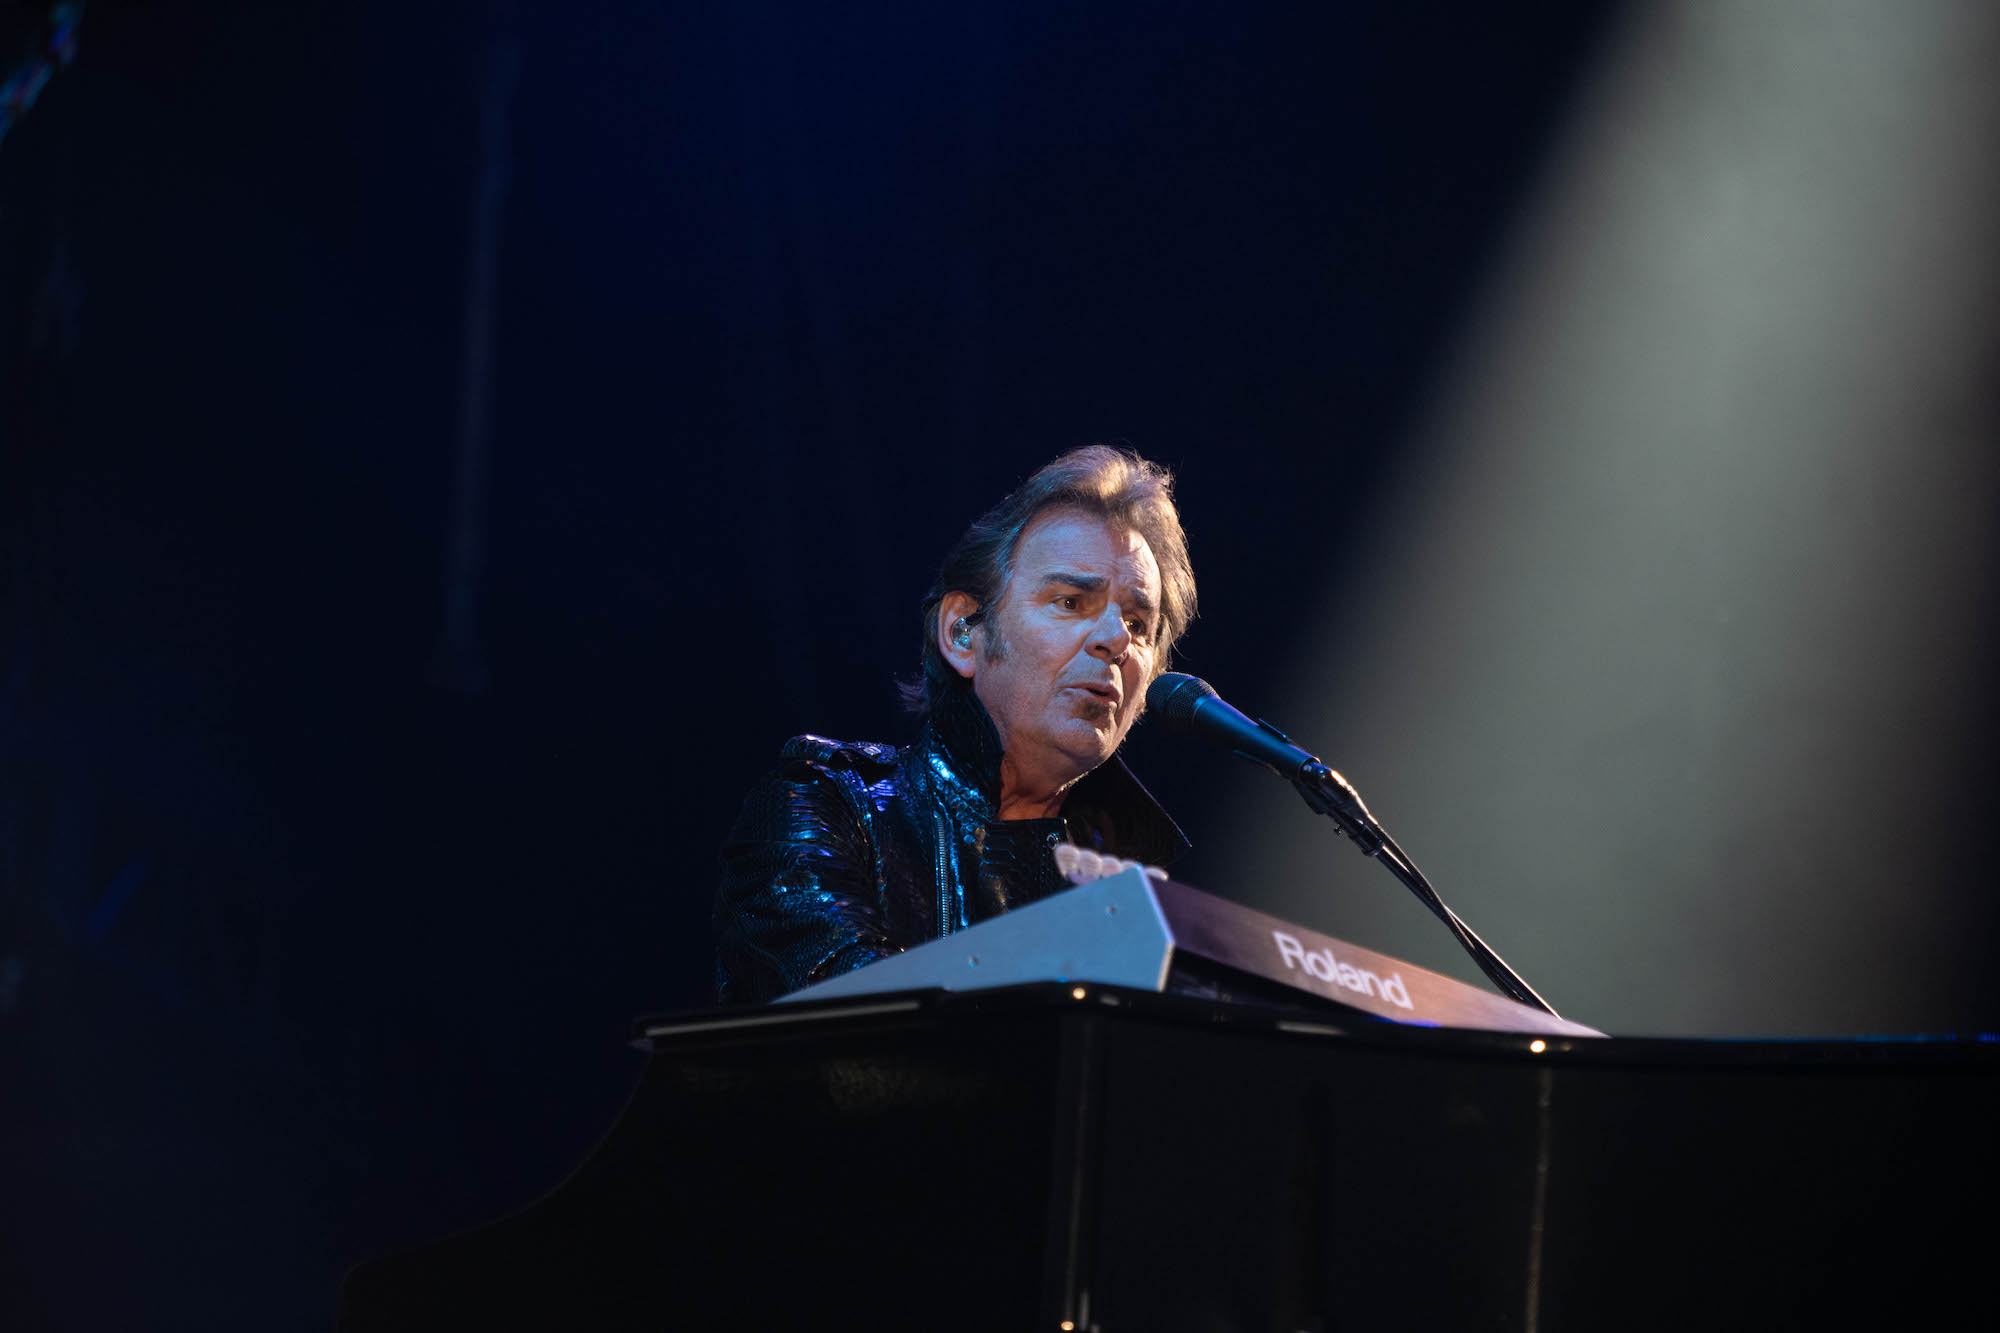 Journey Live at Lollapalooza [GALLERY] 25